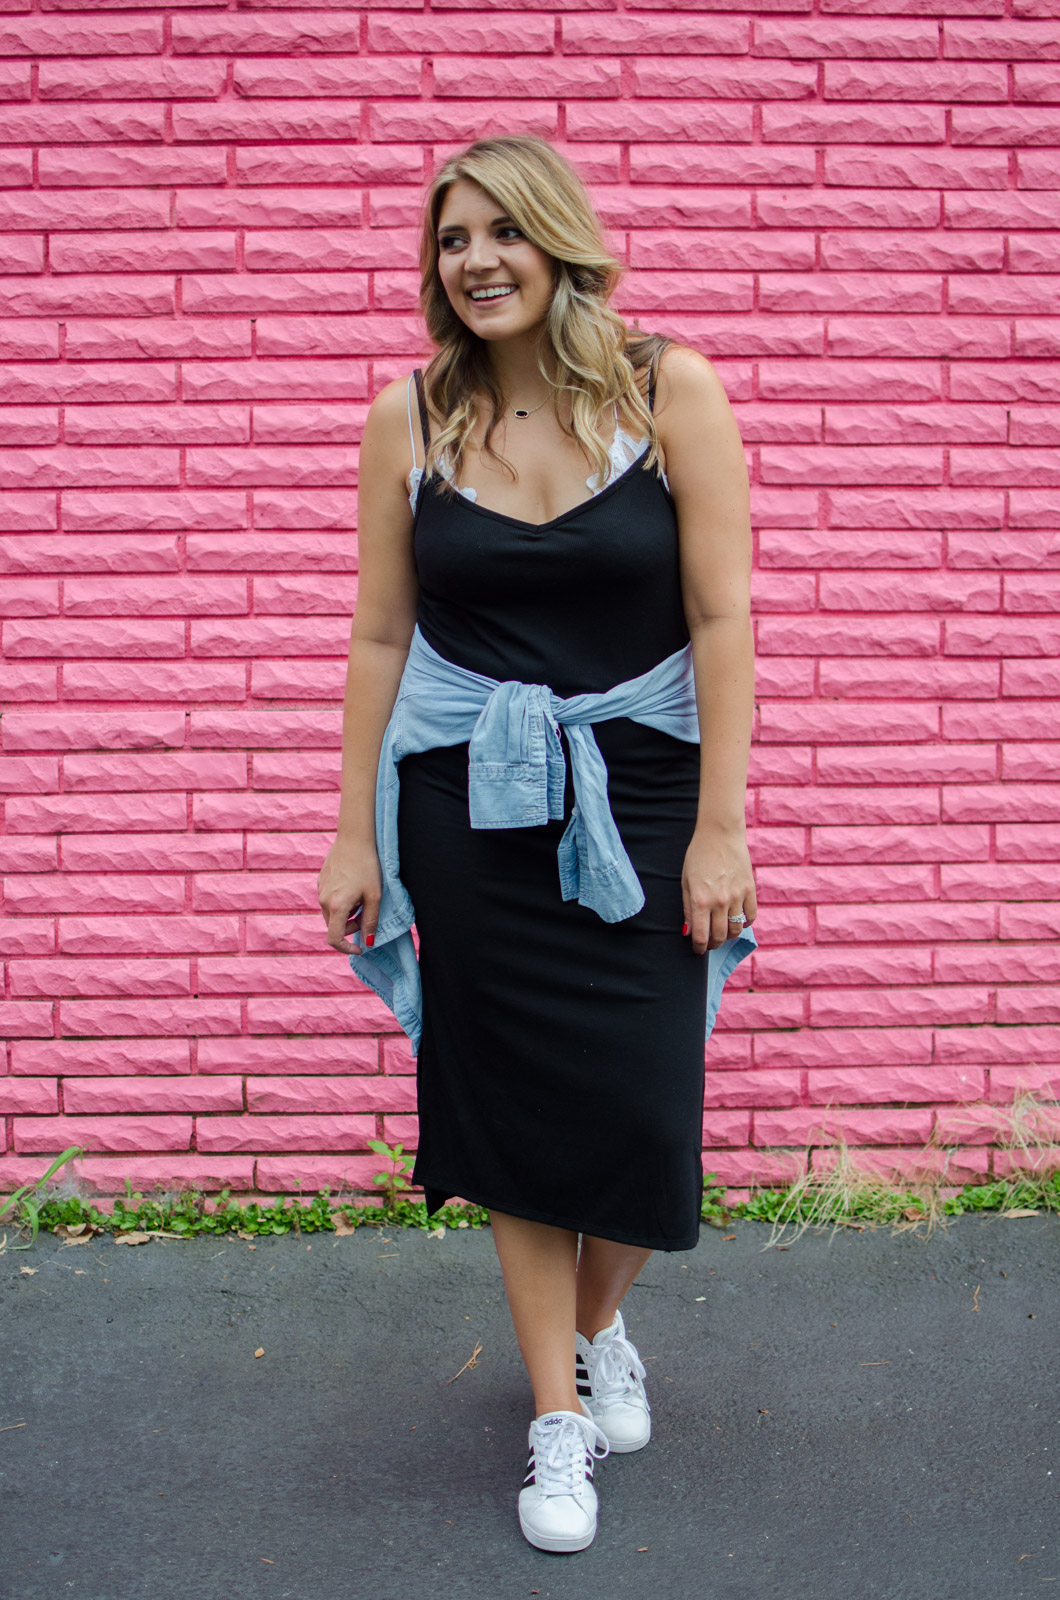 tank dress outfit - ways to wear a tank dress with sneakers | For more cute outfit ideas, go to bylaurenm.com!